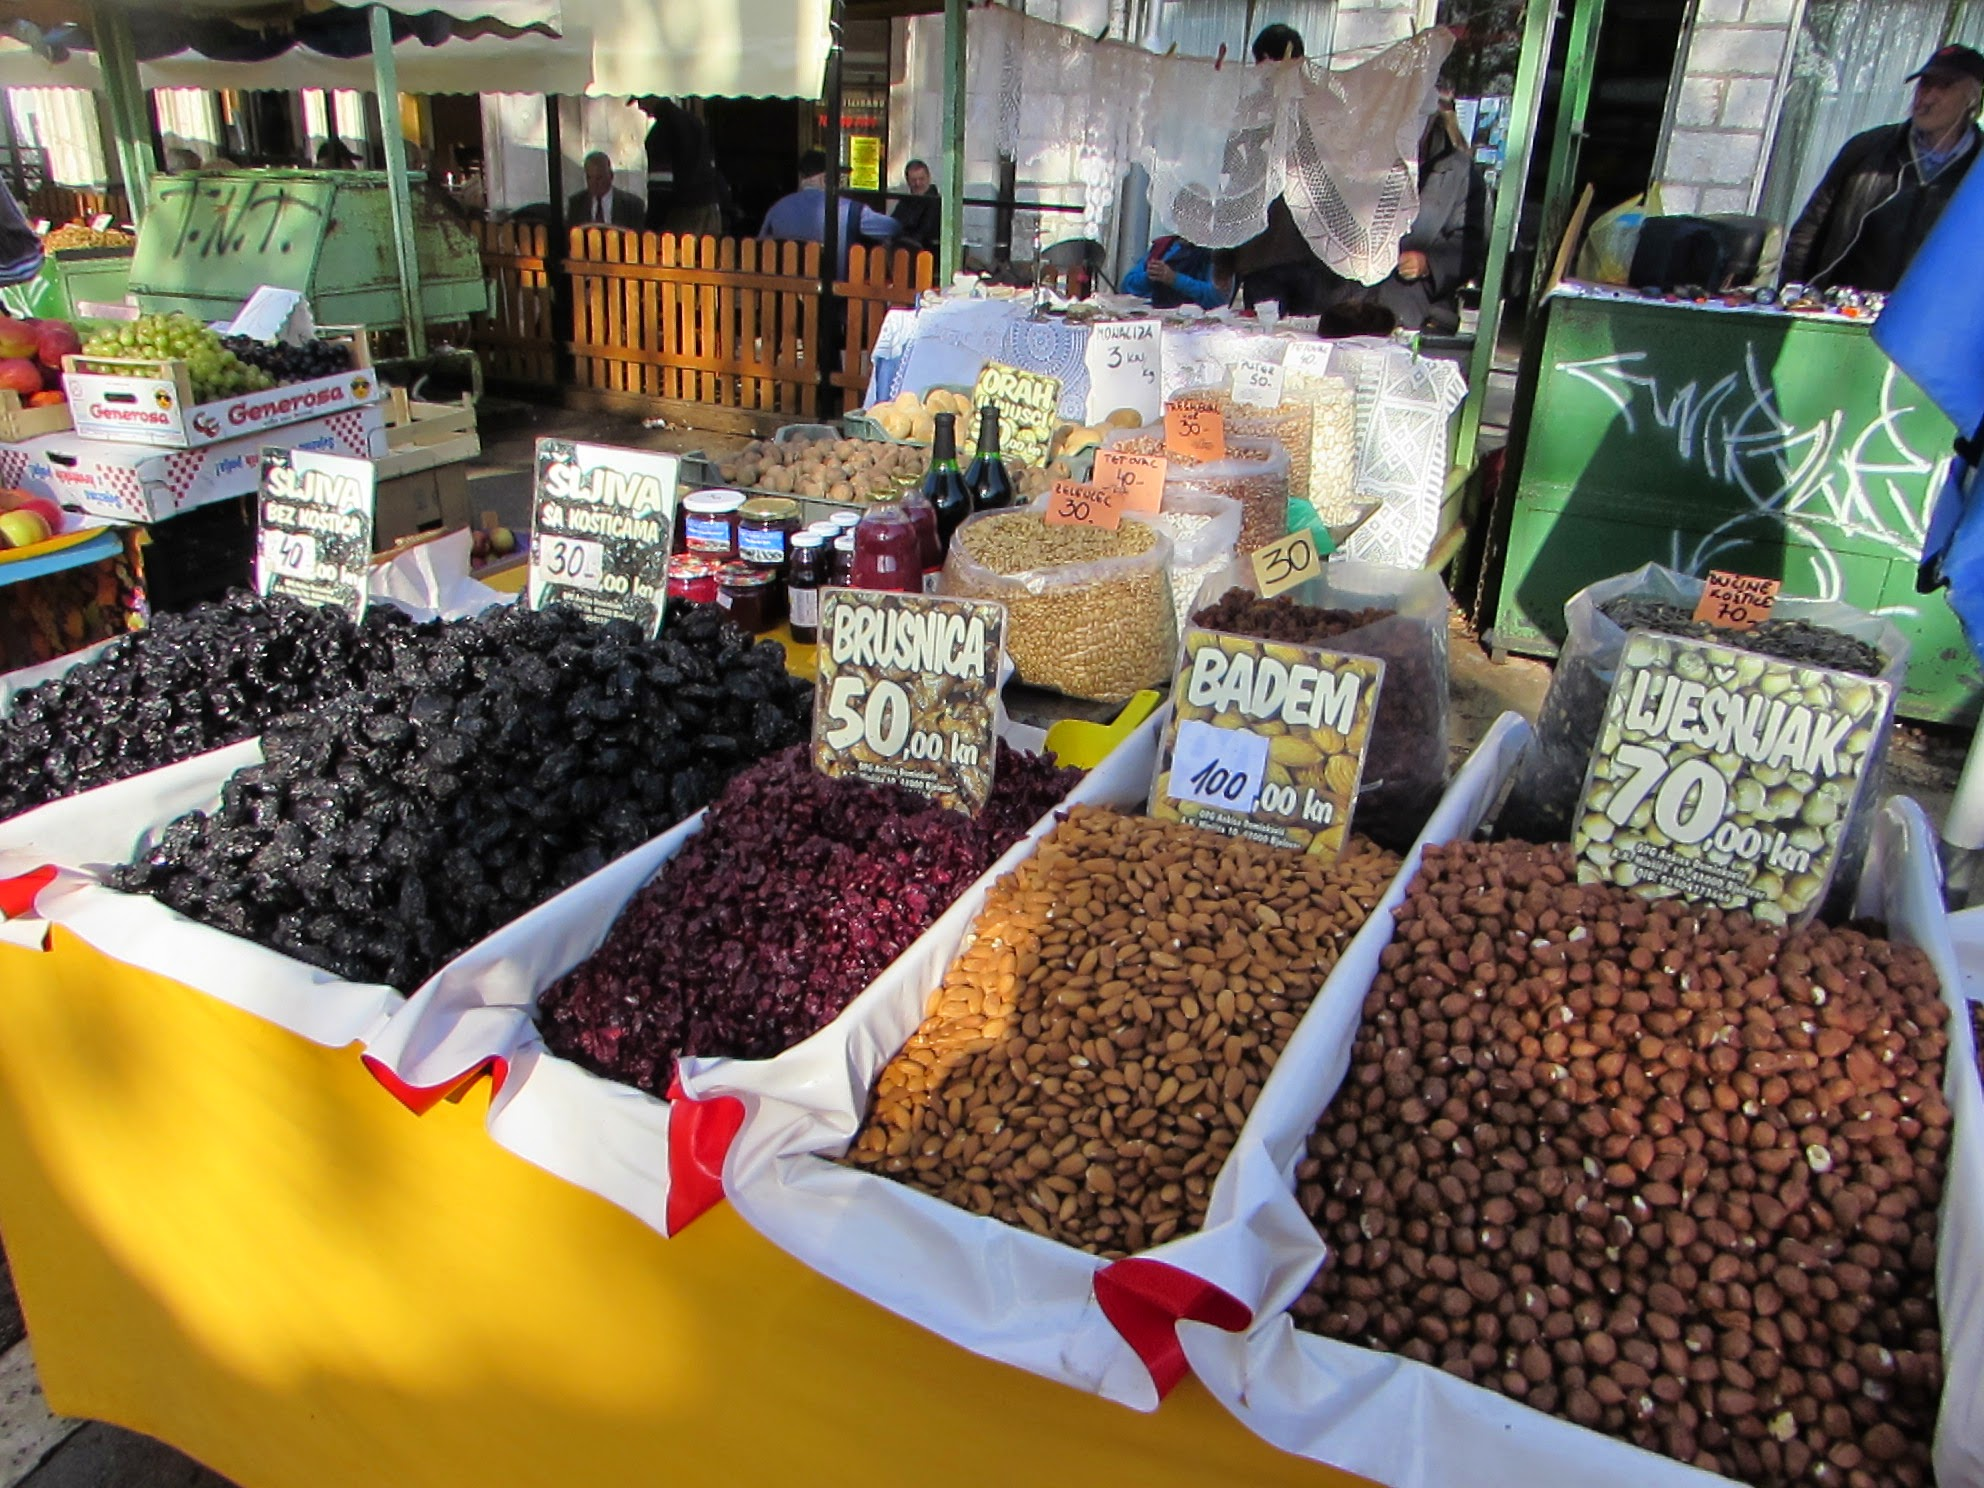 Nuts and dried fruit for sale at Pazar Market, Split.